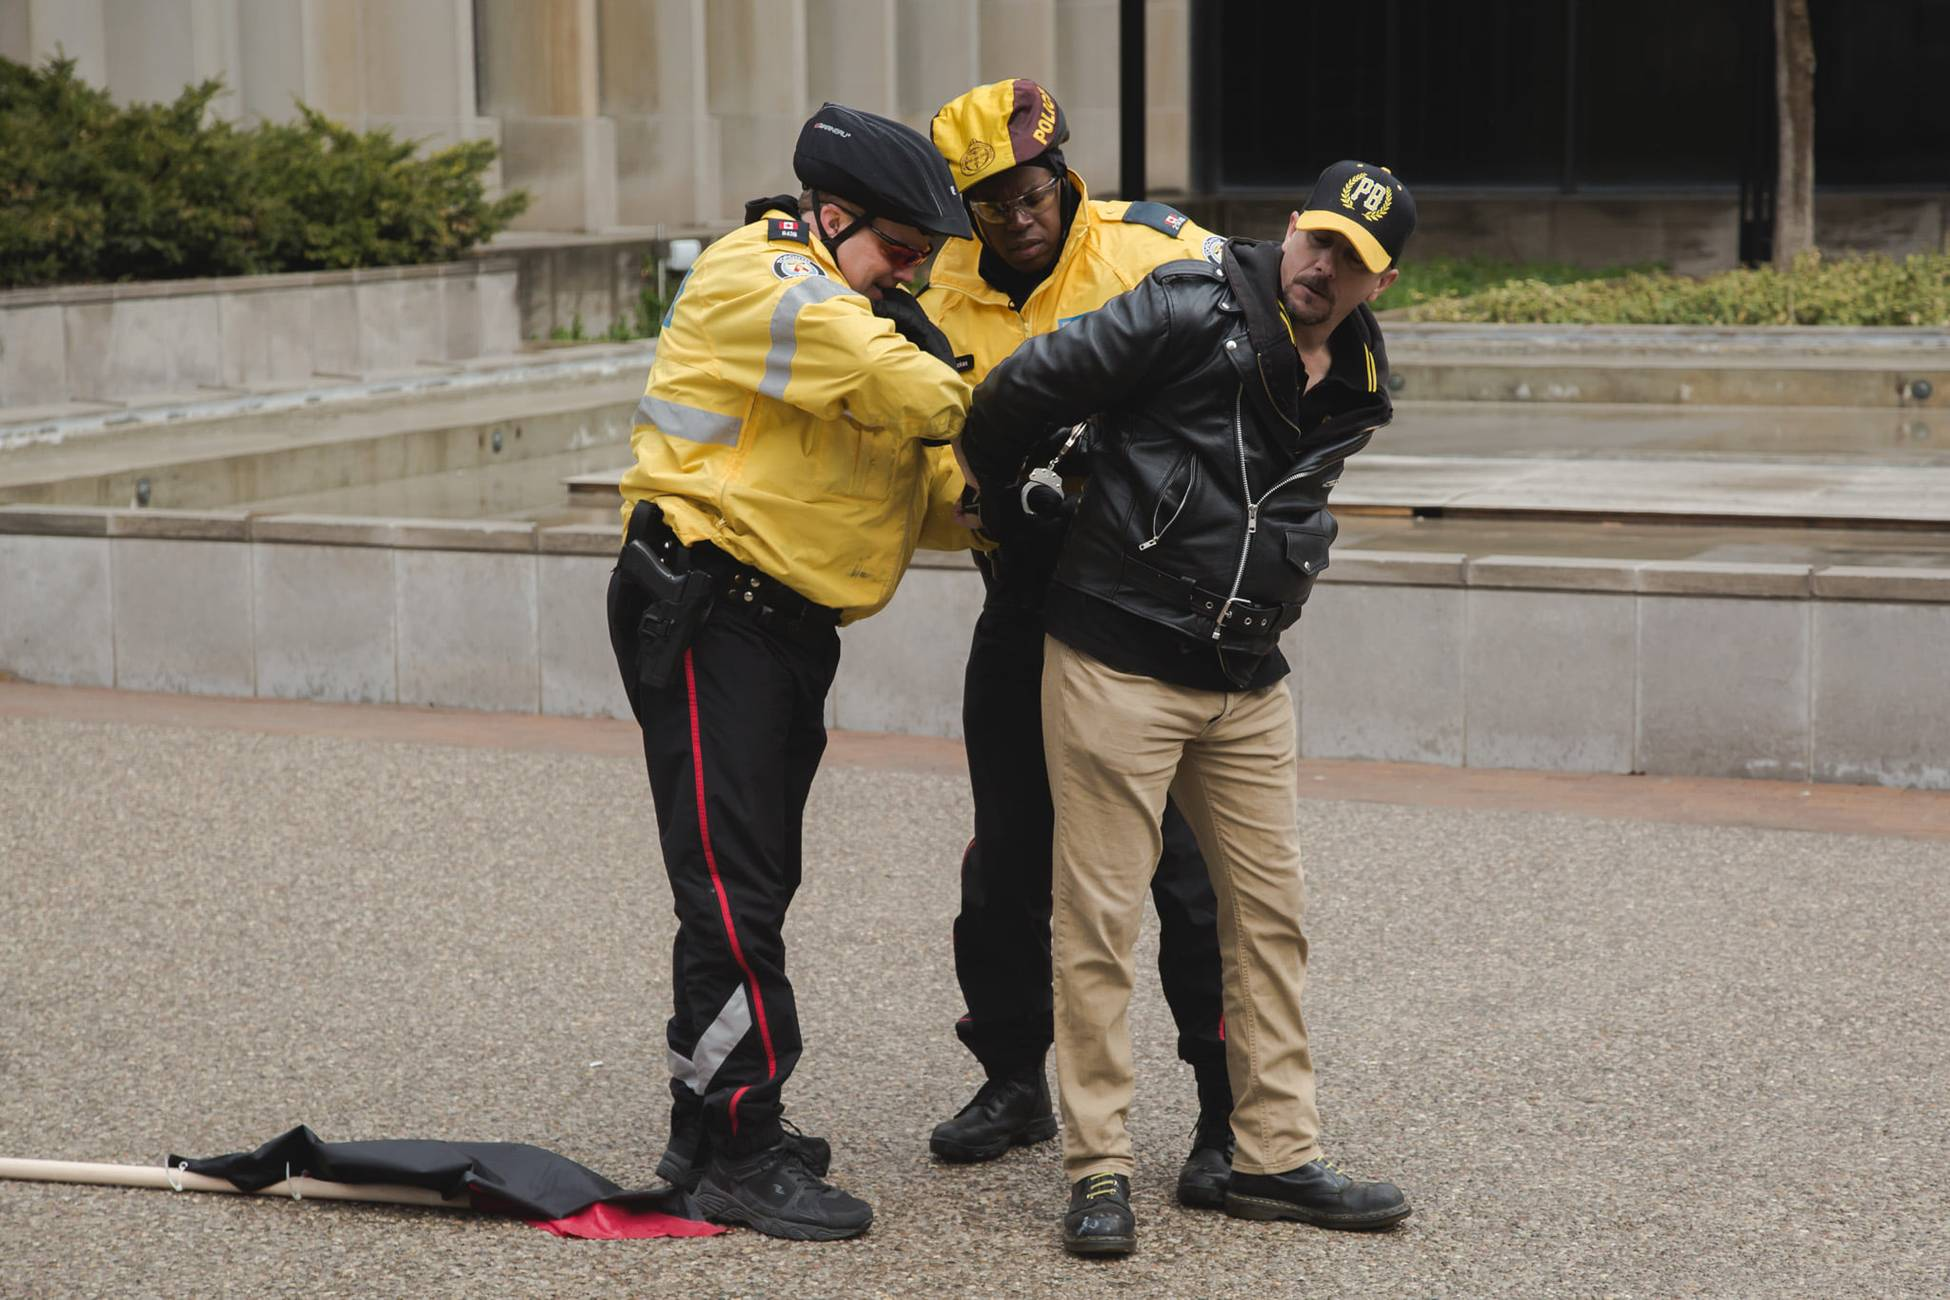 Let's Talk About If Canada's Proud Boys Are Terrorists